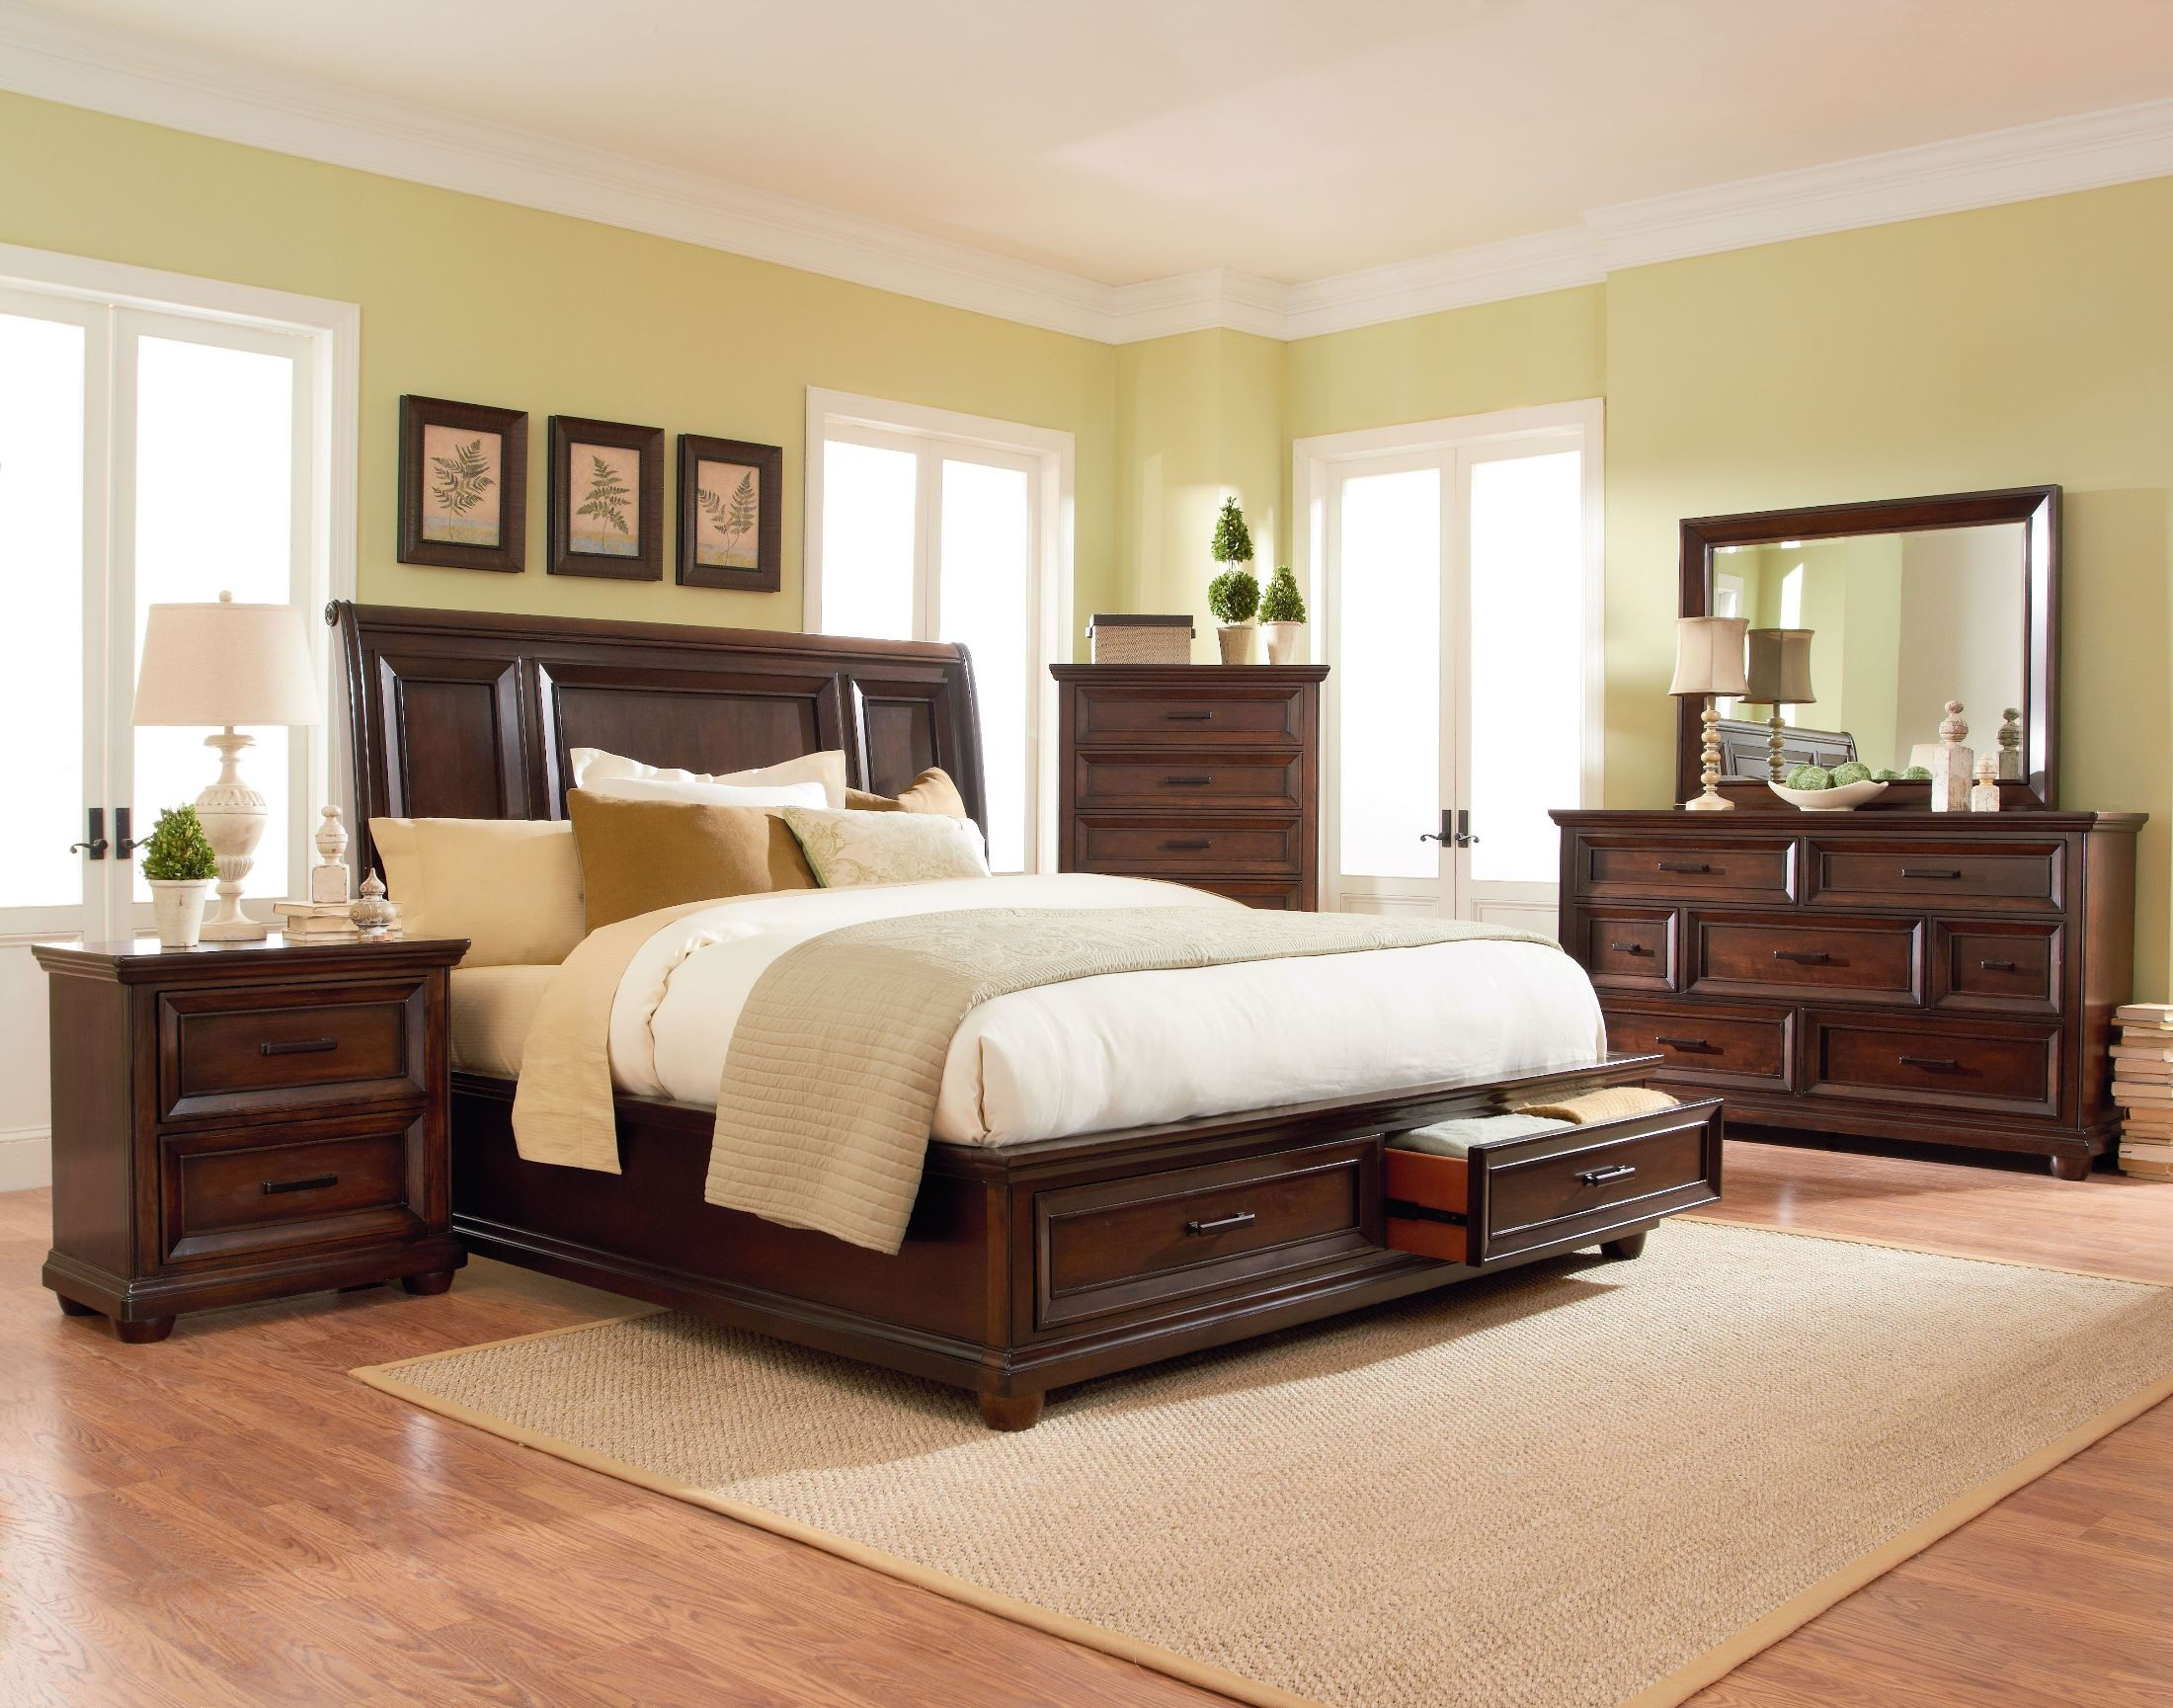 Seagrass Bedroom Furniture Seagrass Bedroom Furniture Suppliers Image Of Seagrass Headboard